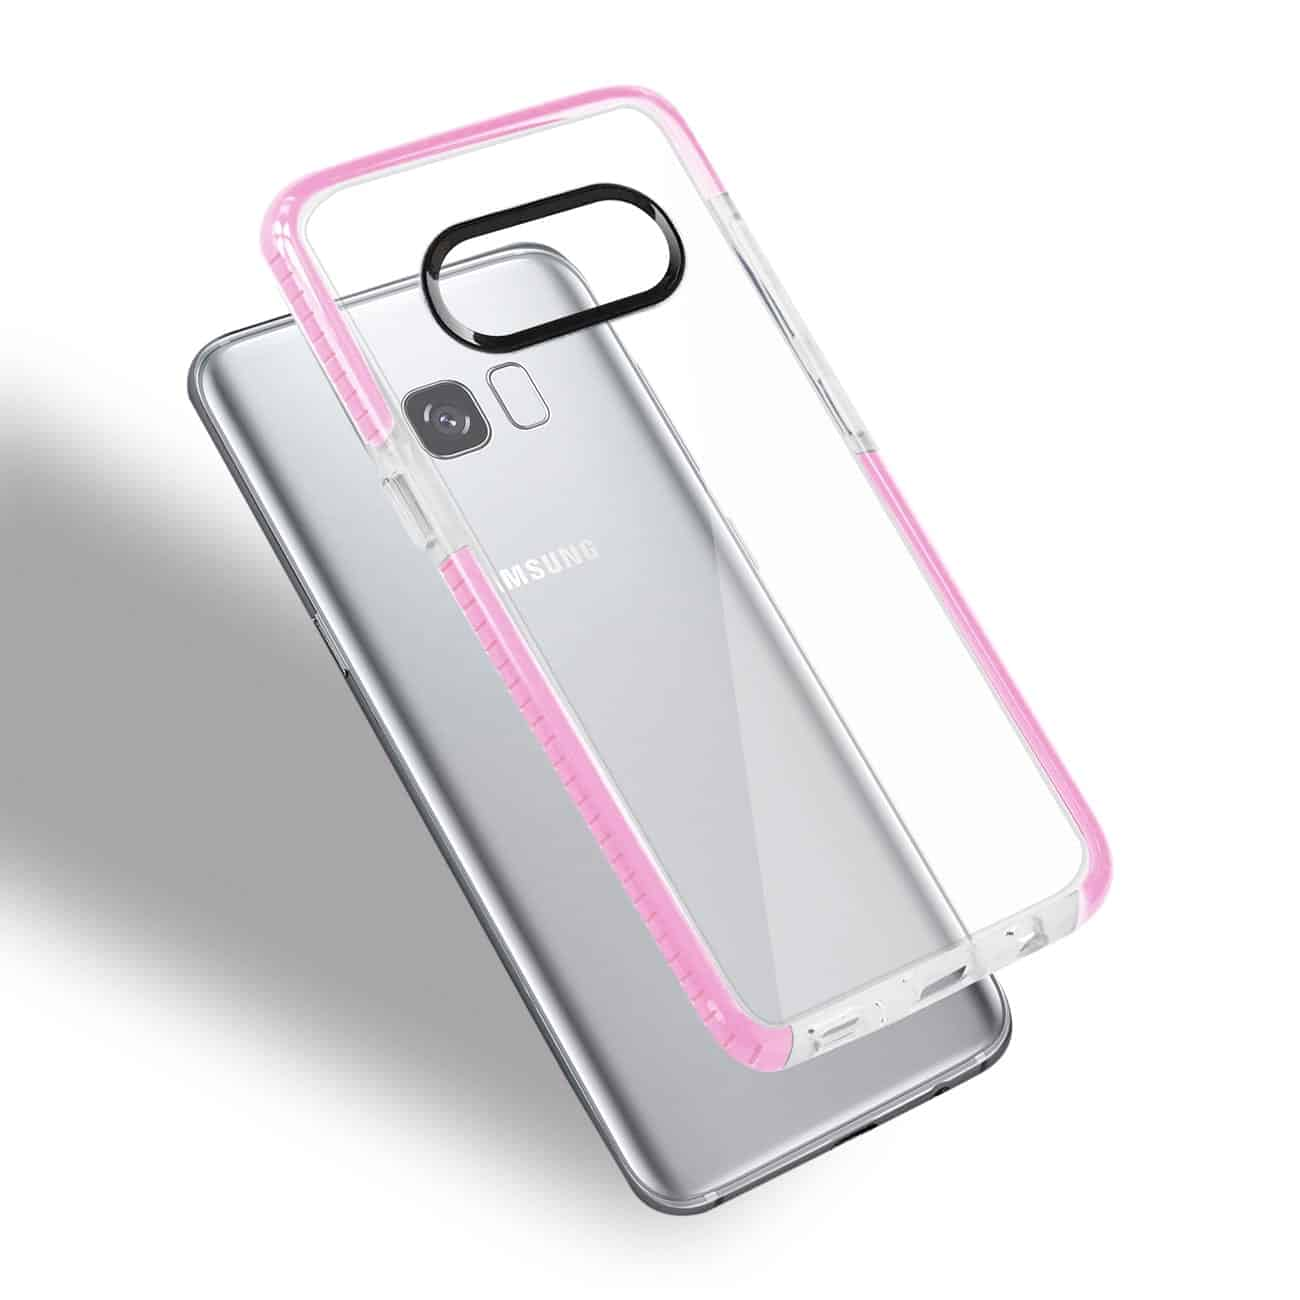 SAMSUNG GALAXY S8 EDGE/ S8 PLUS SOFT TRANSPARENT TPU CASE IN CLEAR PINK